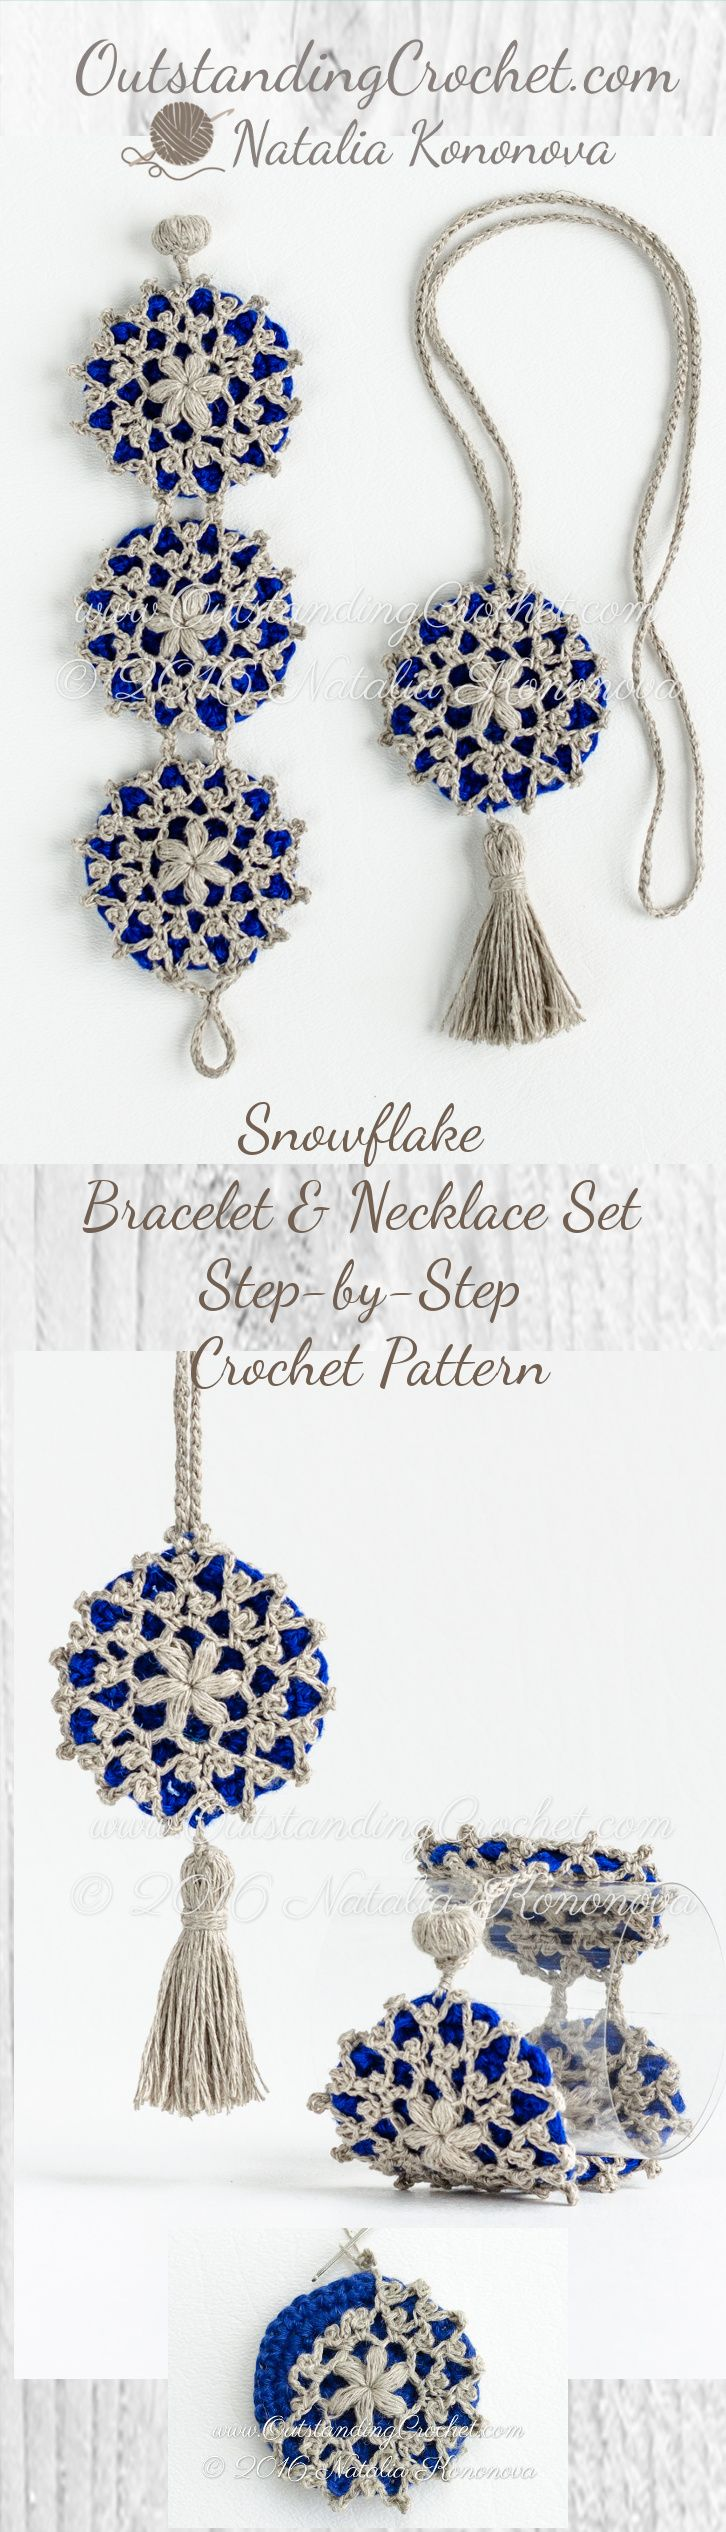 Check it out! Patterns for your outstanding crochet! | CROCHET ...